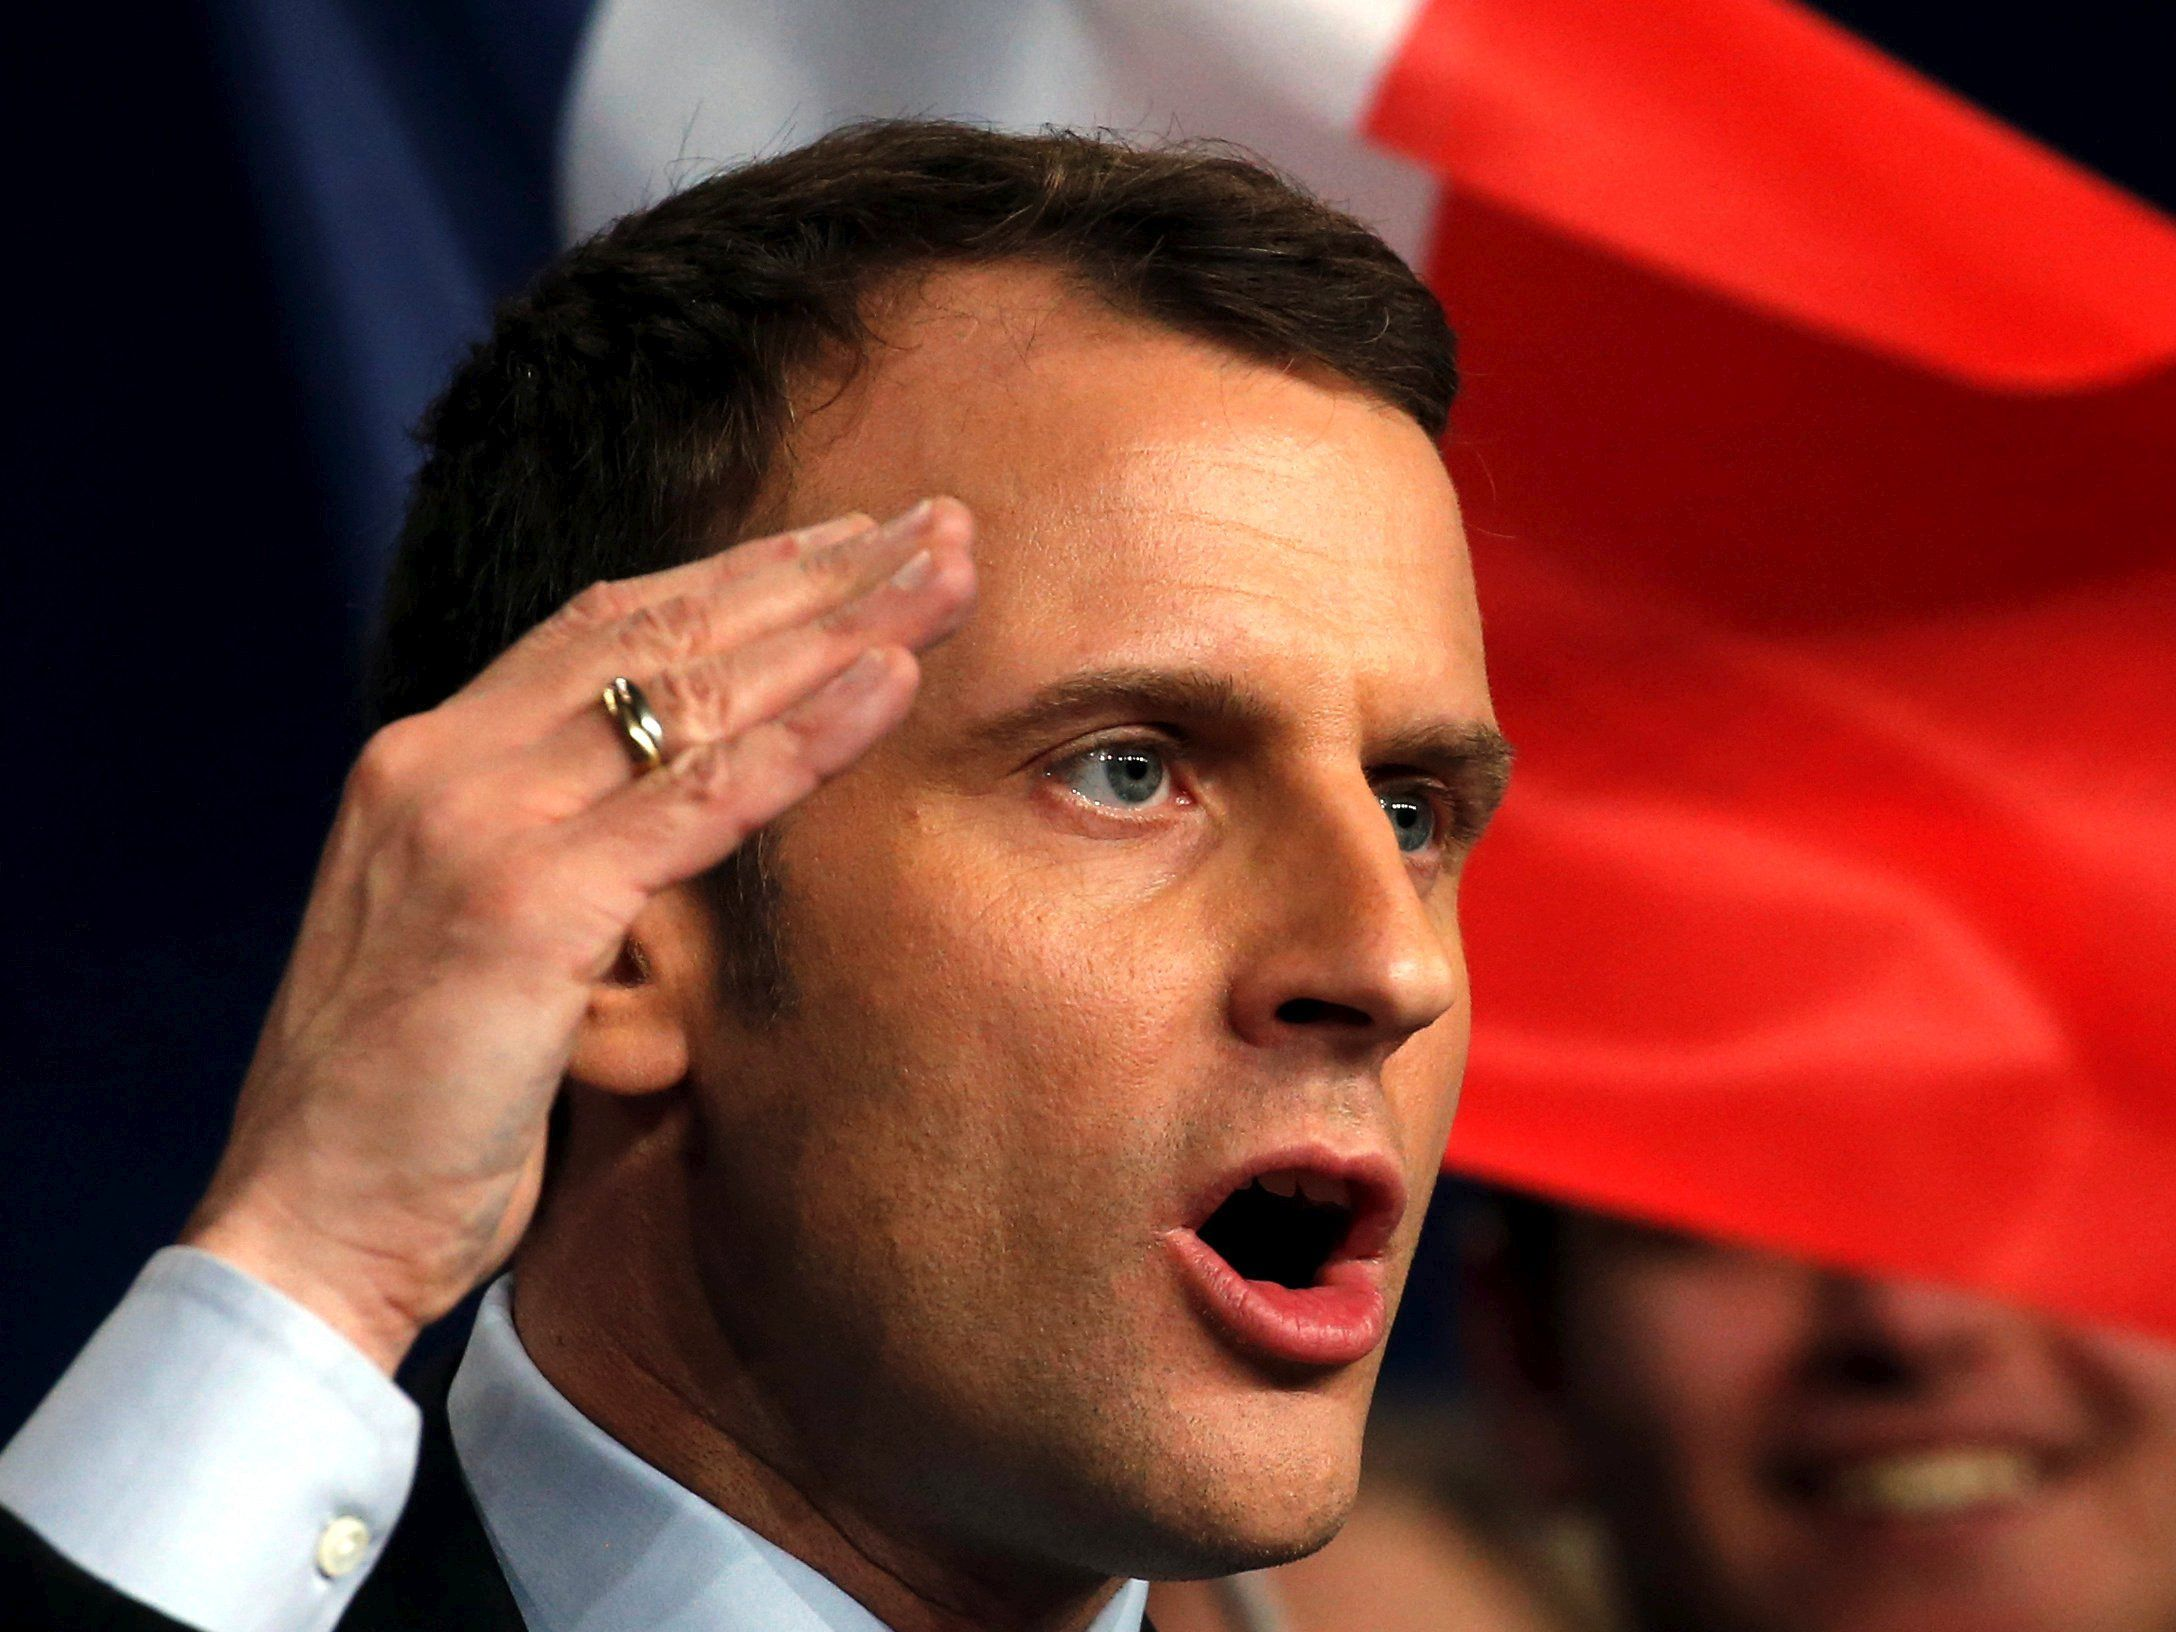 French election candidate Emmanuel Macron files lawsuit over 'cyber misinformation'